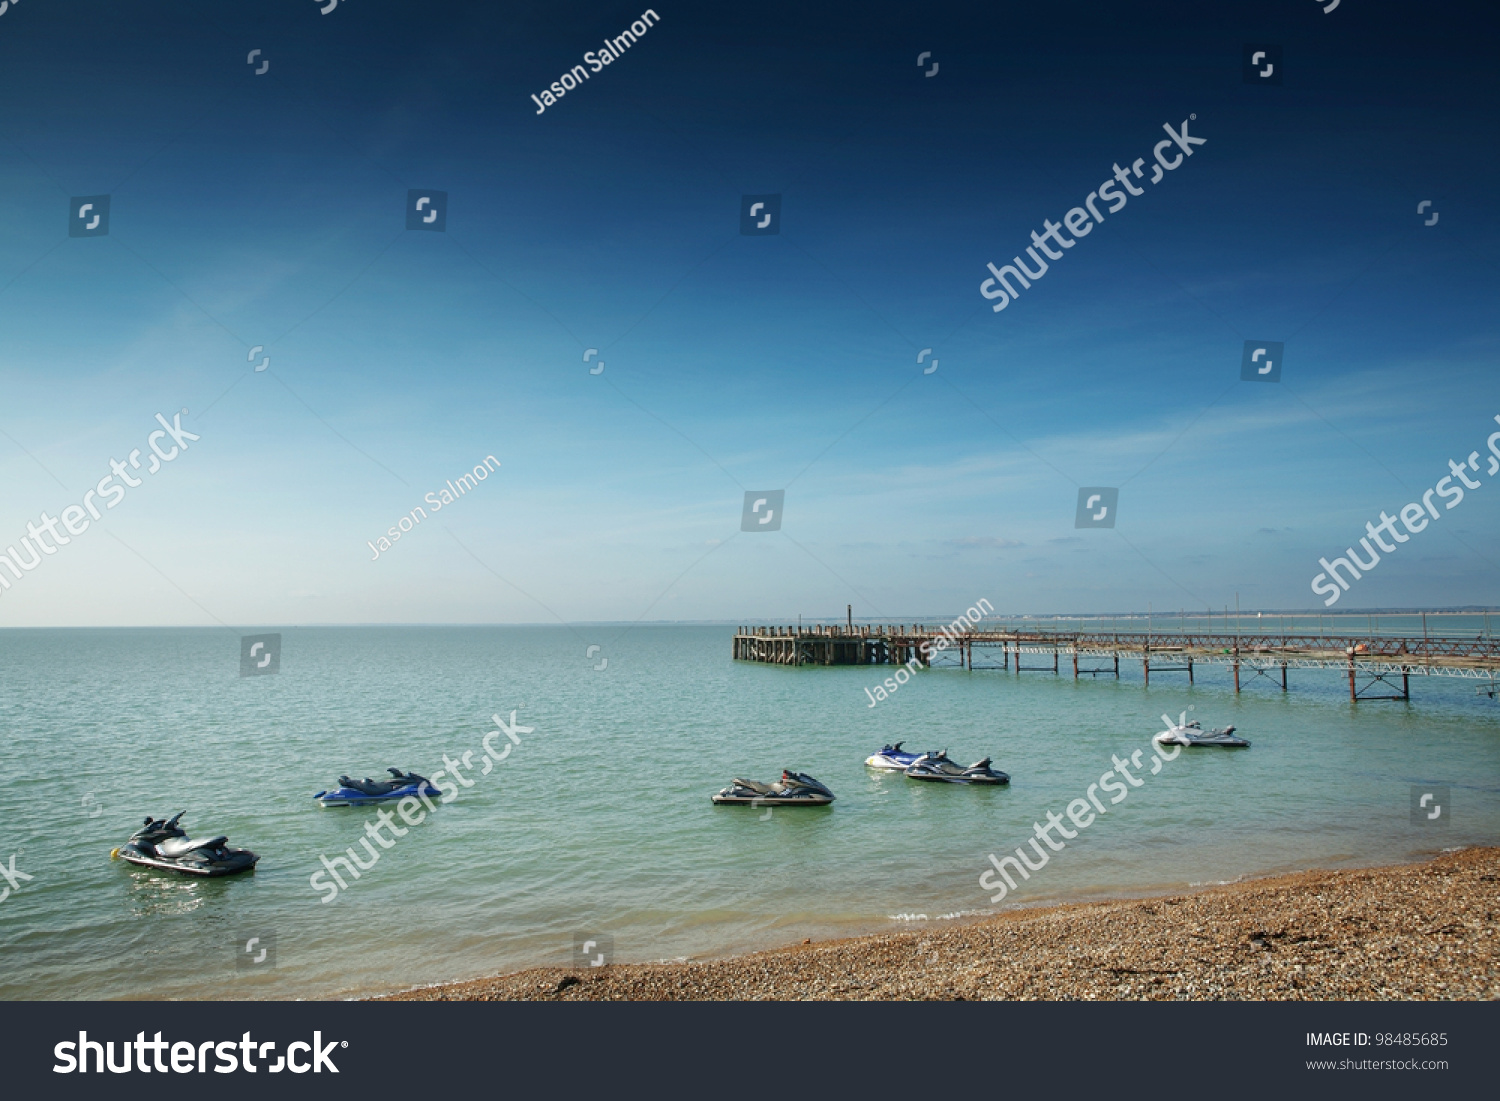 middle eastern single men in isle of wight The isle of wight is a boundaries the isle of wight forms a single st helens is a village and civil parish located on the eastern side of the isle of wight.